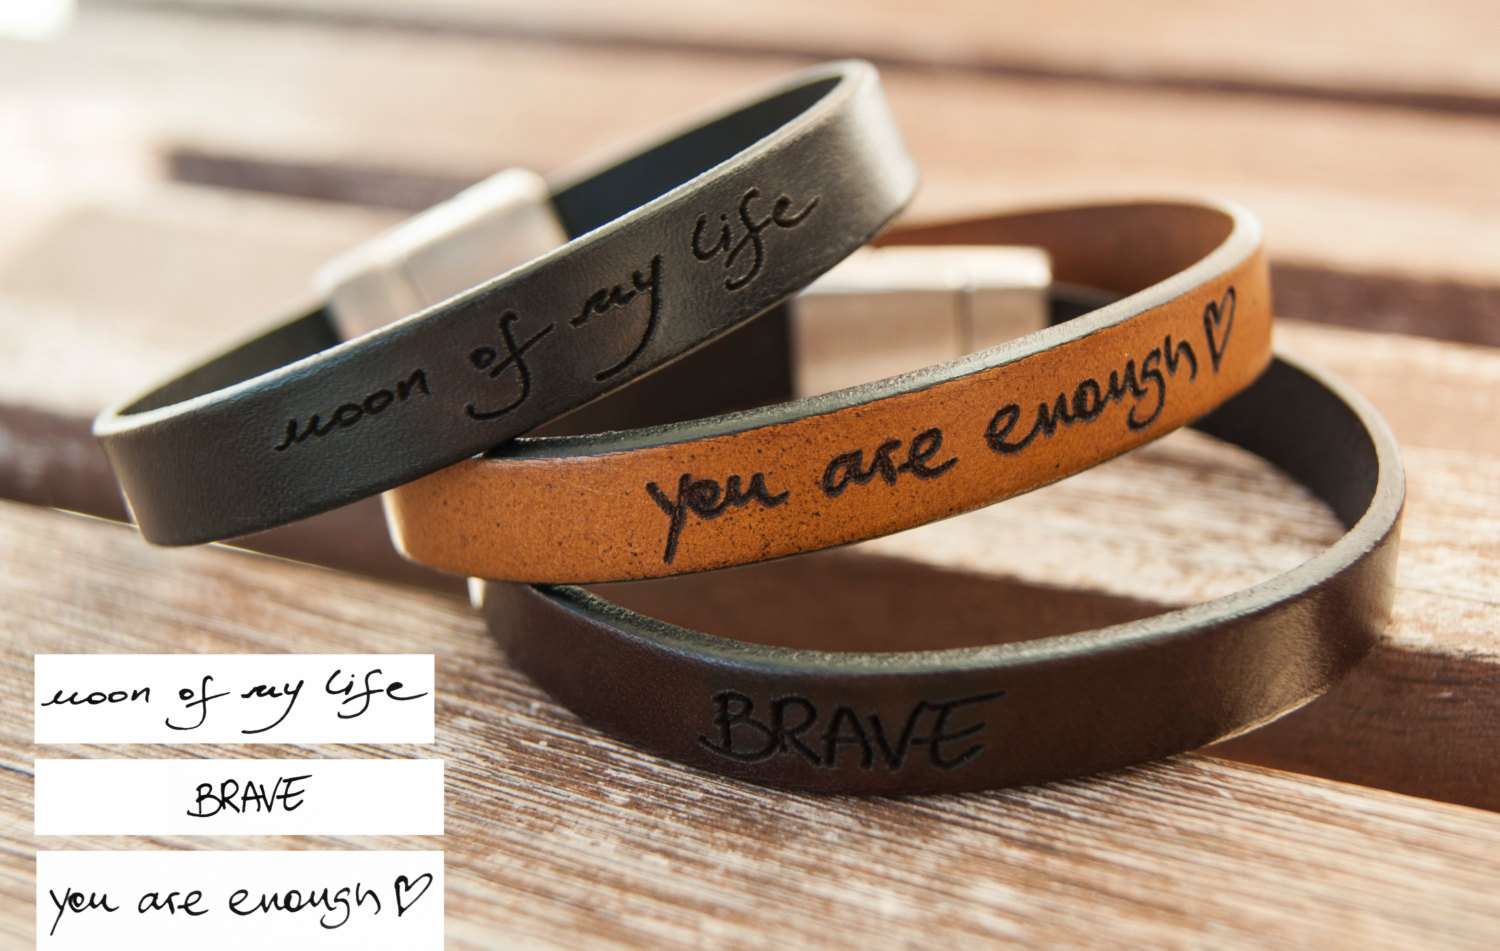 33fd620c10a08 Custom Handwriting Bracelet Signature Bracelet Actual Handwriting Best  Friend Gift Personalized Memorial Gift Handwriting Jewelry Leather from ...